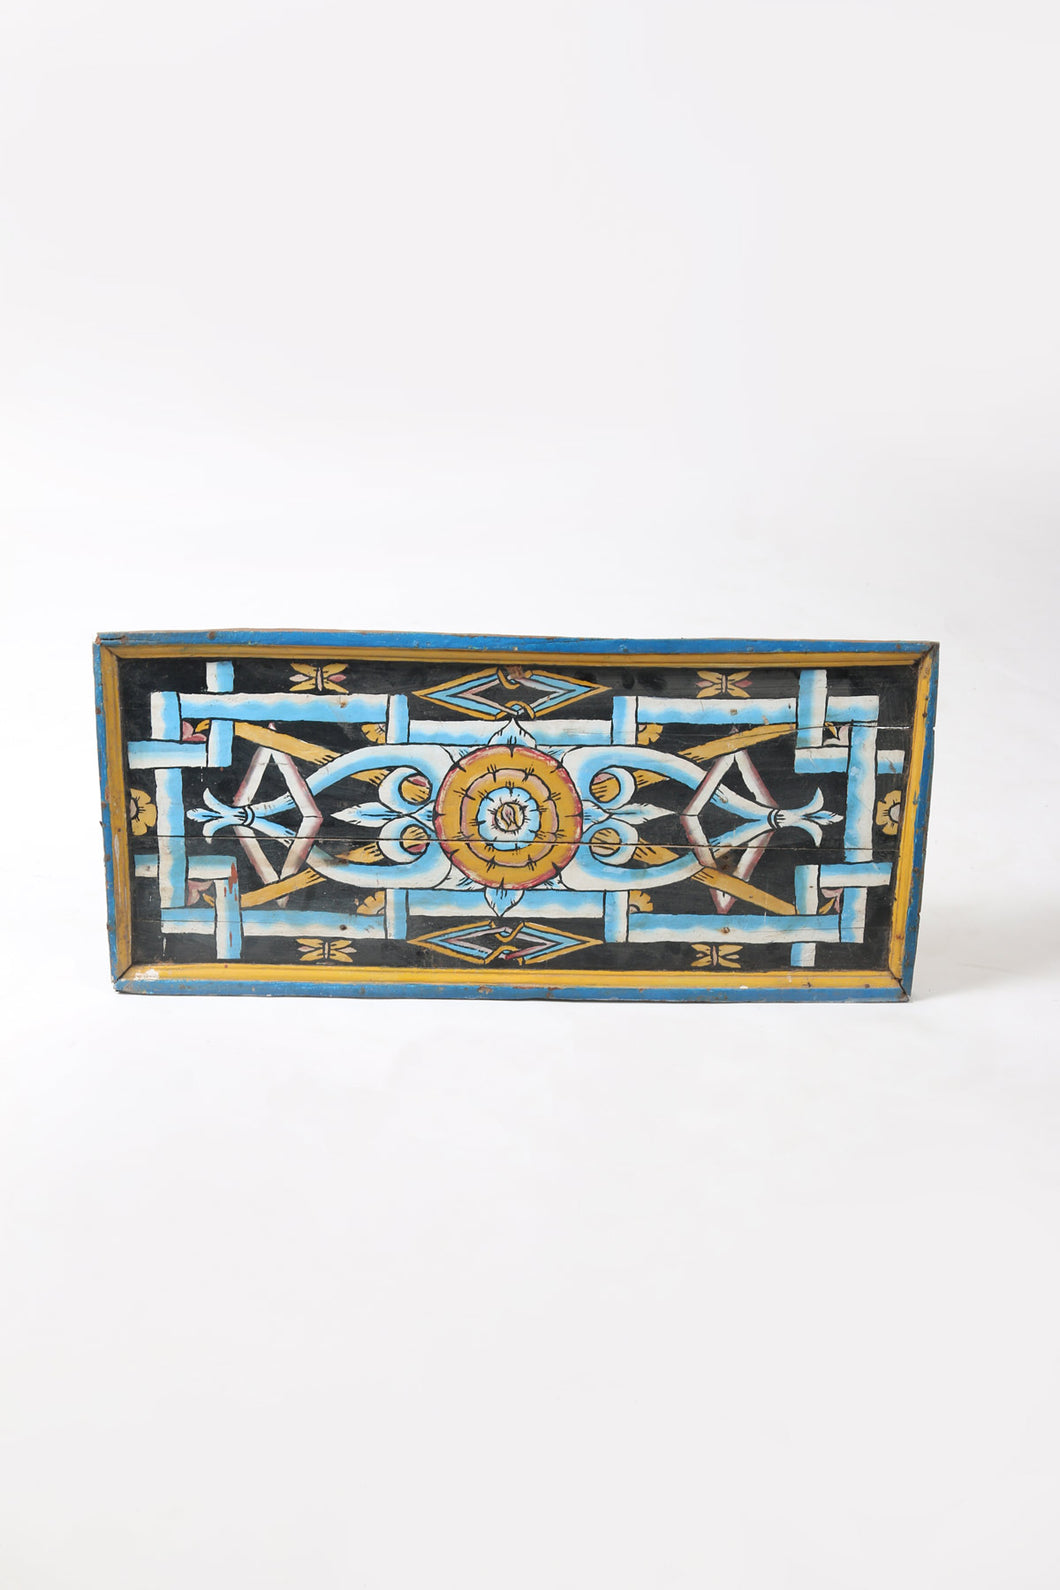 Hand Painted Art Panel Turquoise and Gold on Black Background